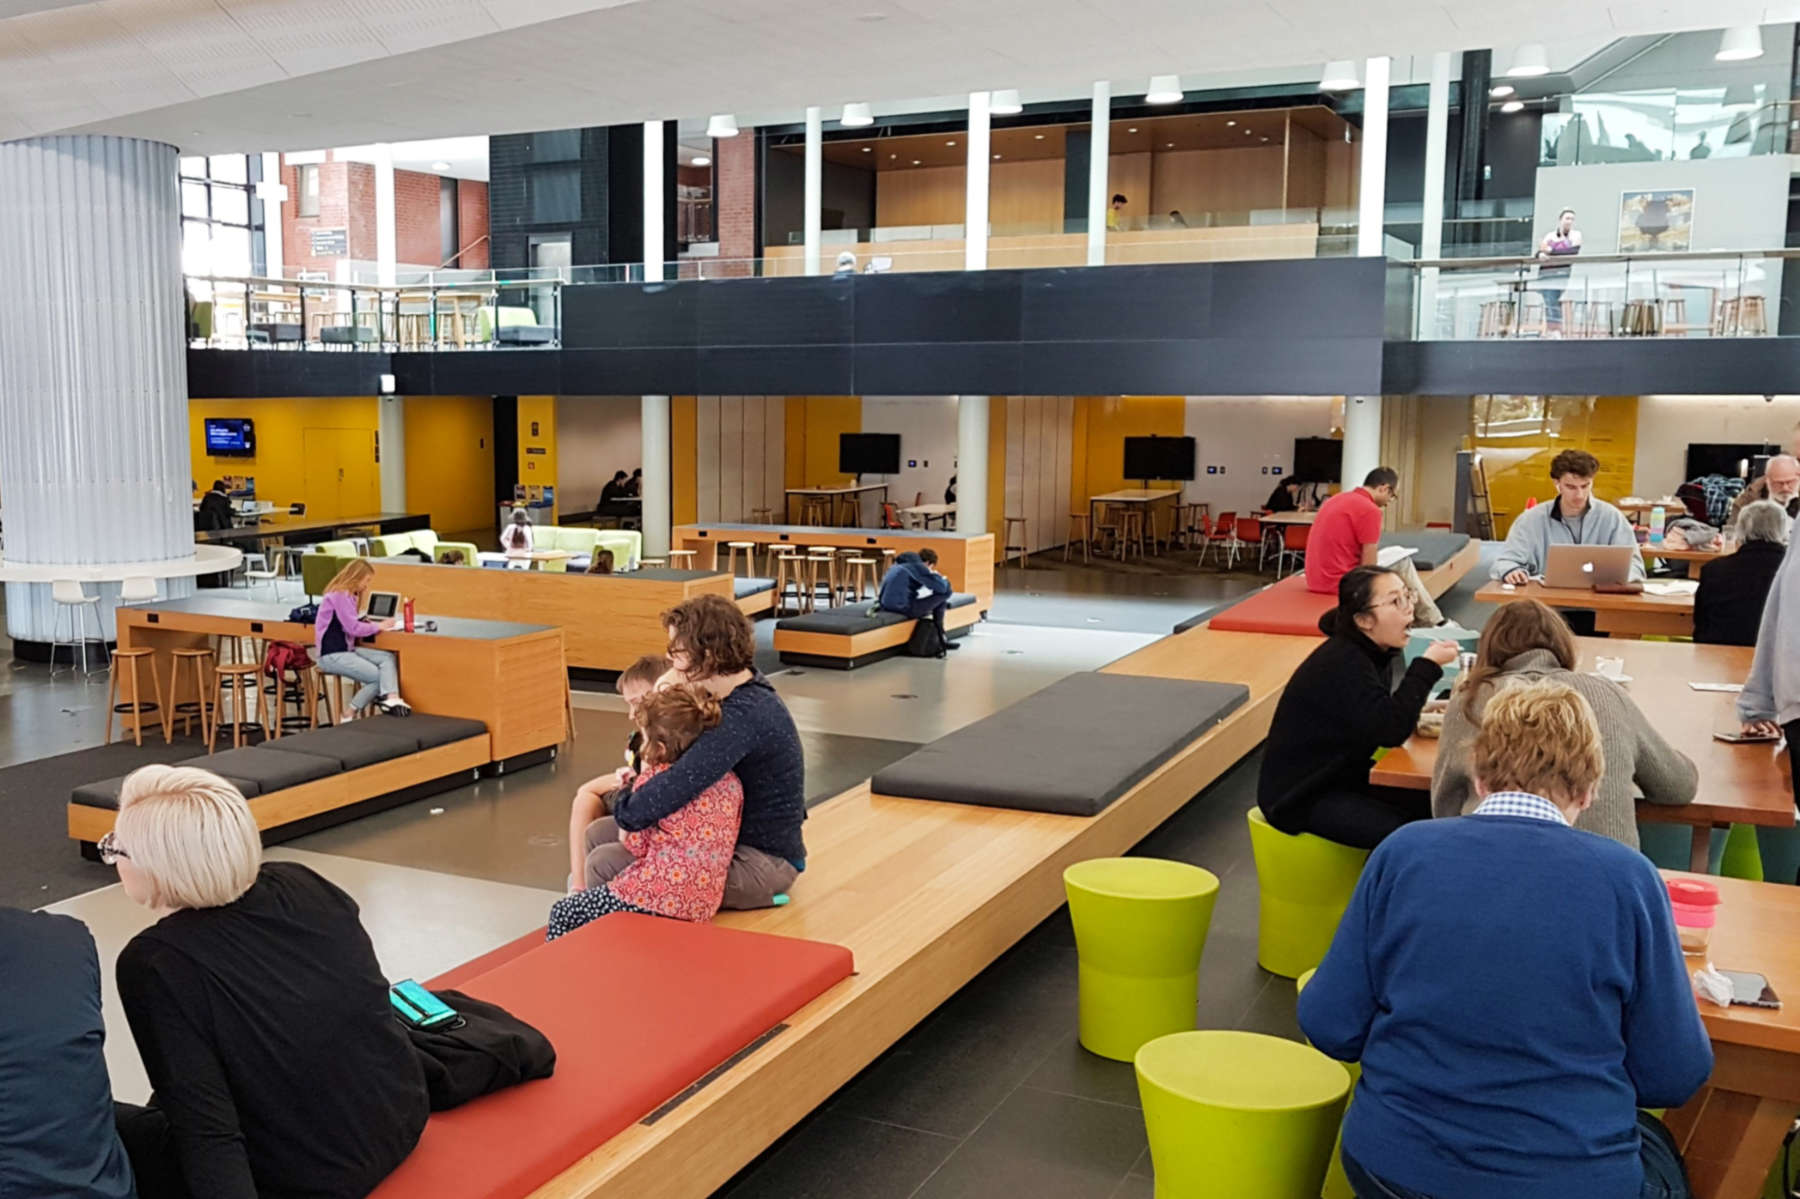 Vic Books - seating in open space